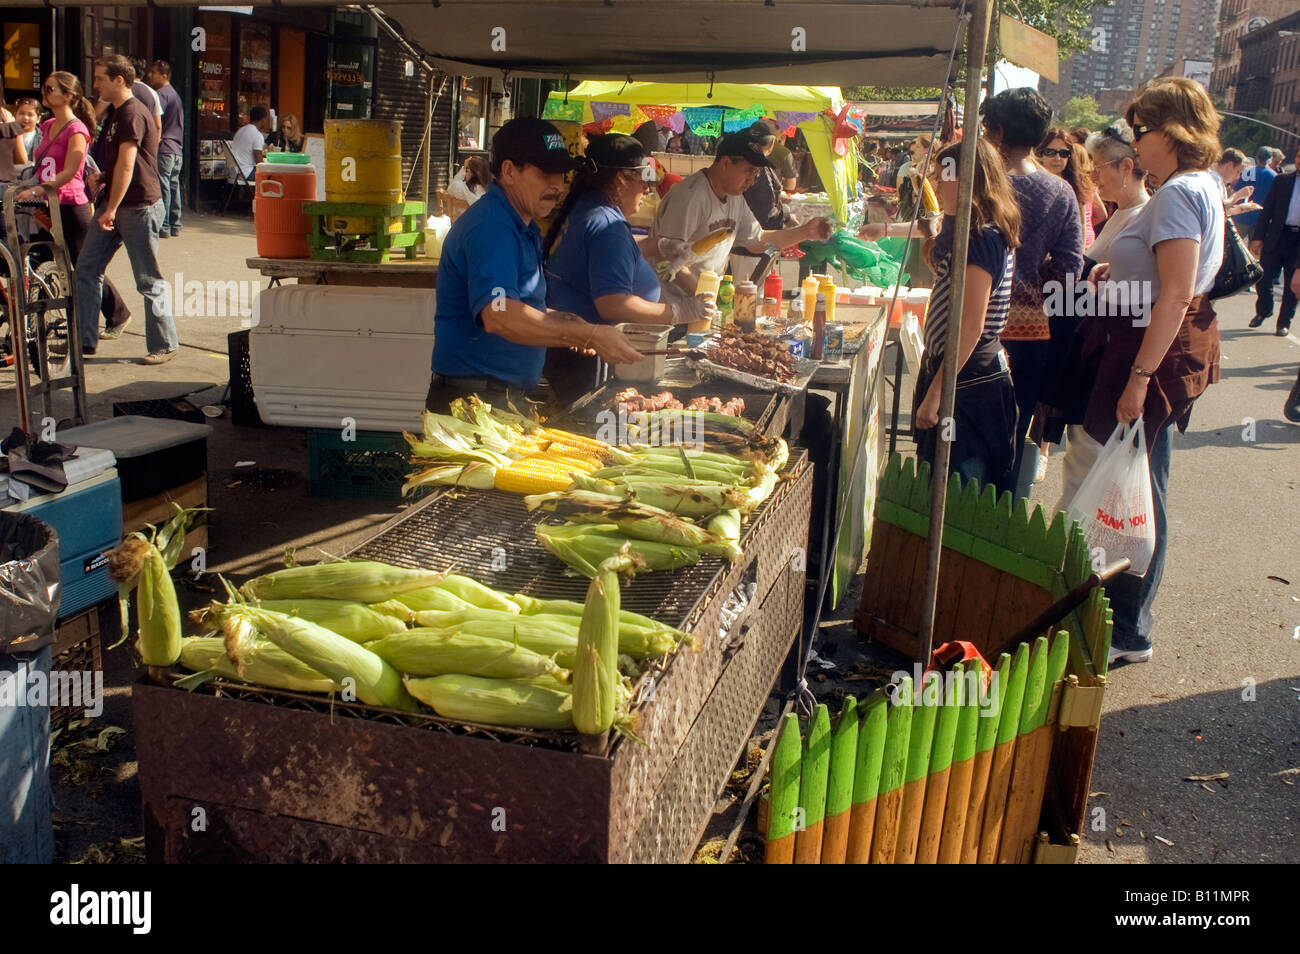 Corn is grilled at the famous Ninth Avenue Food Festival in New York - Stock Image